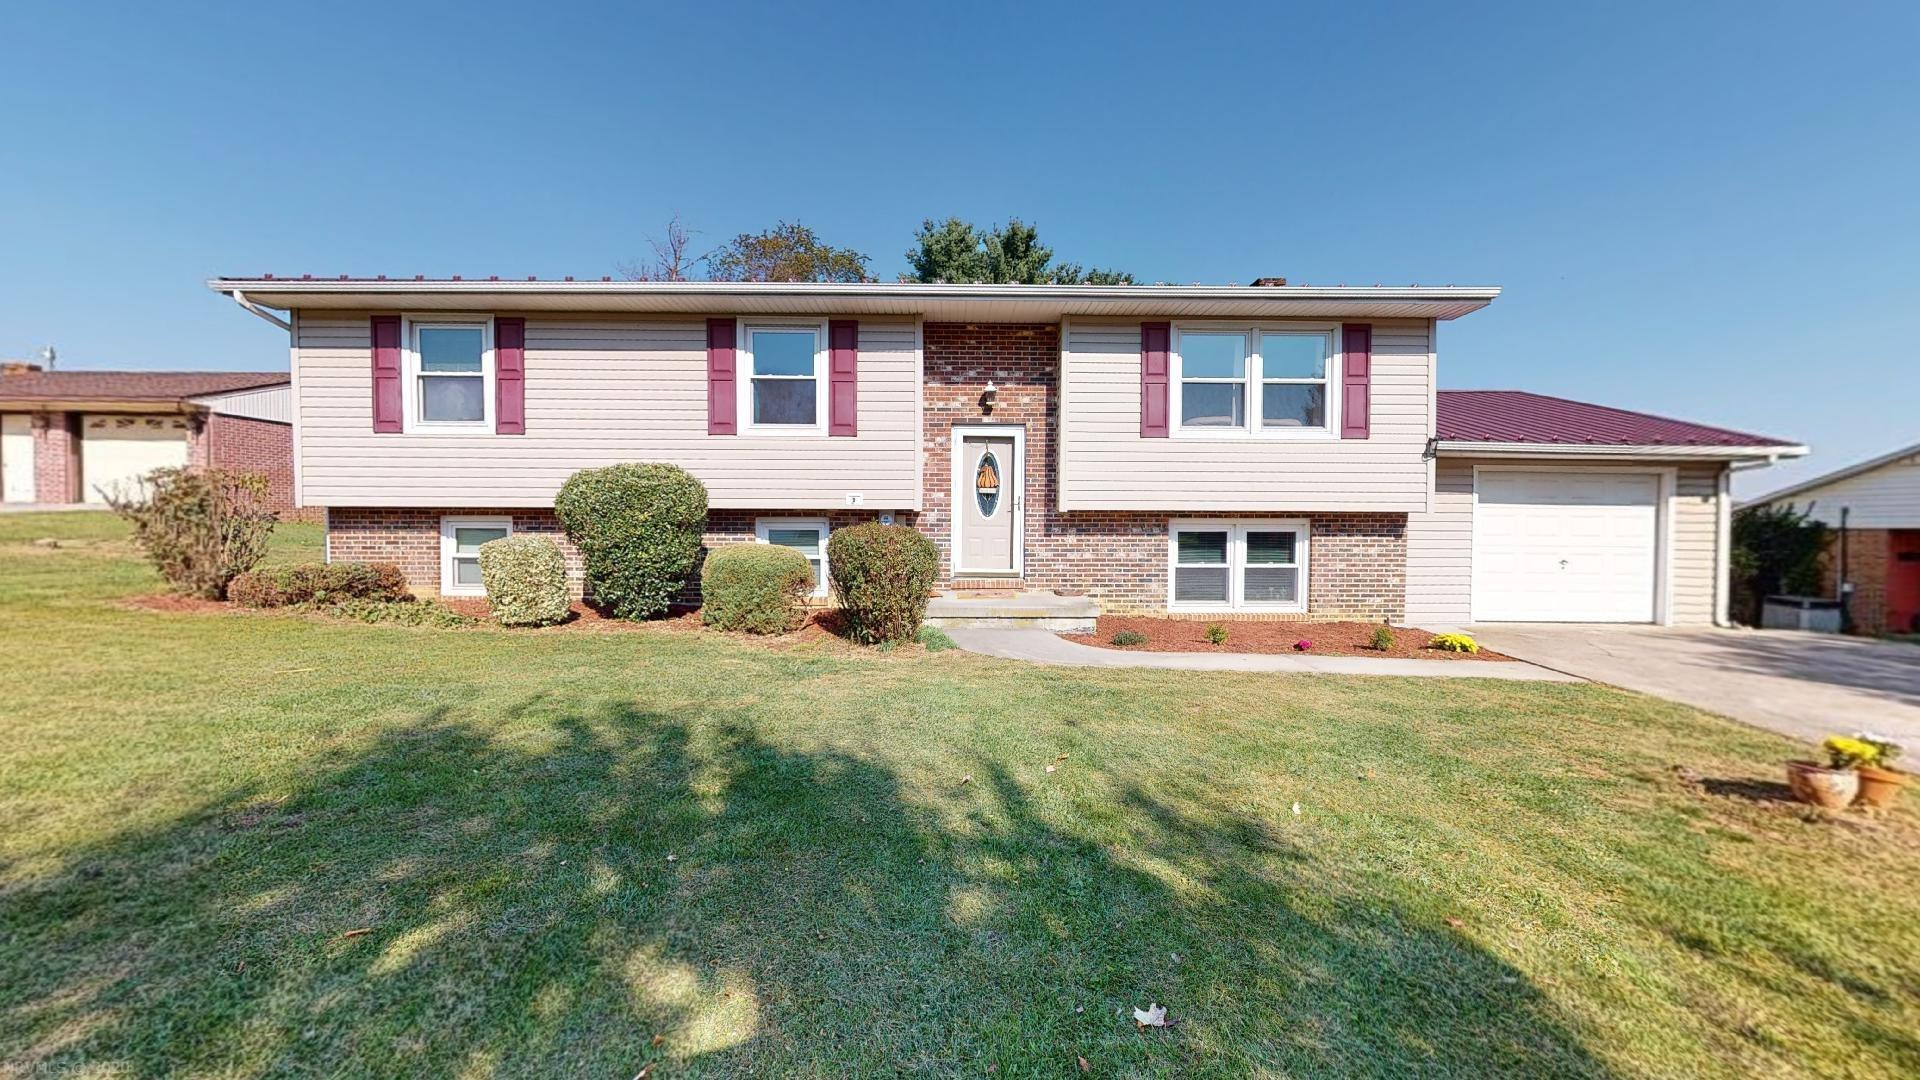 Beautiful split foyer with 4 bedrooms and 2 baths, close to shopping, schools, and hospital.